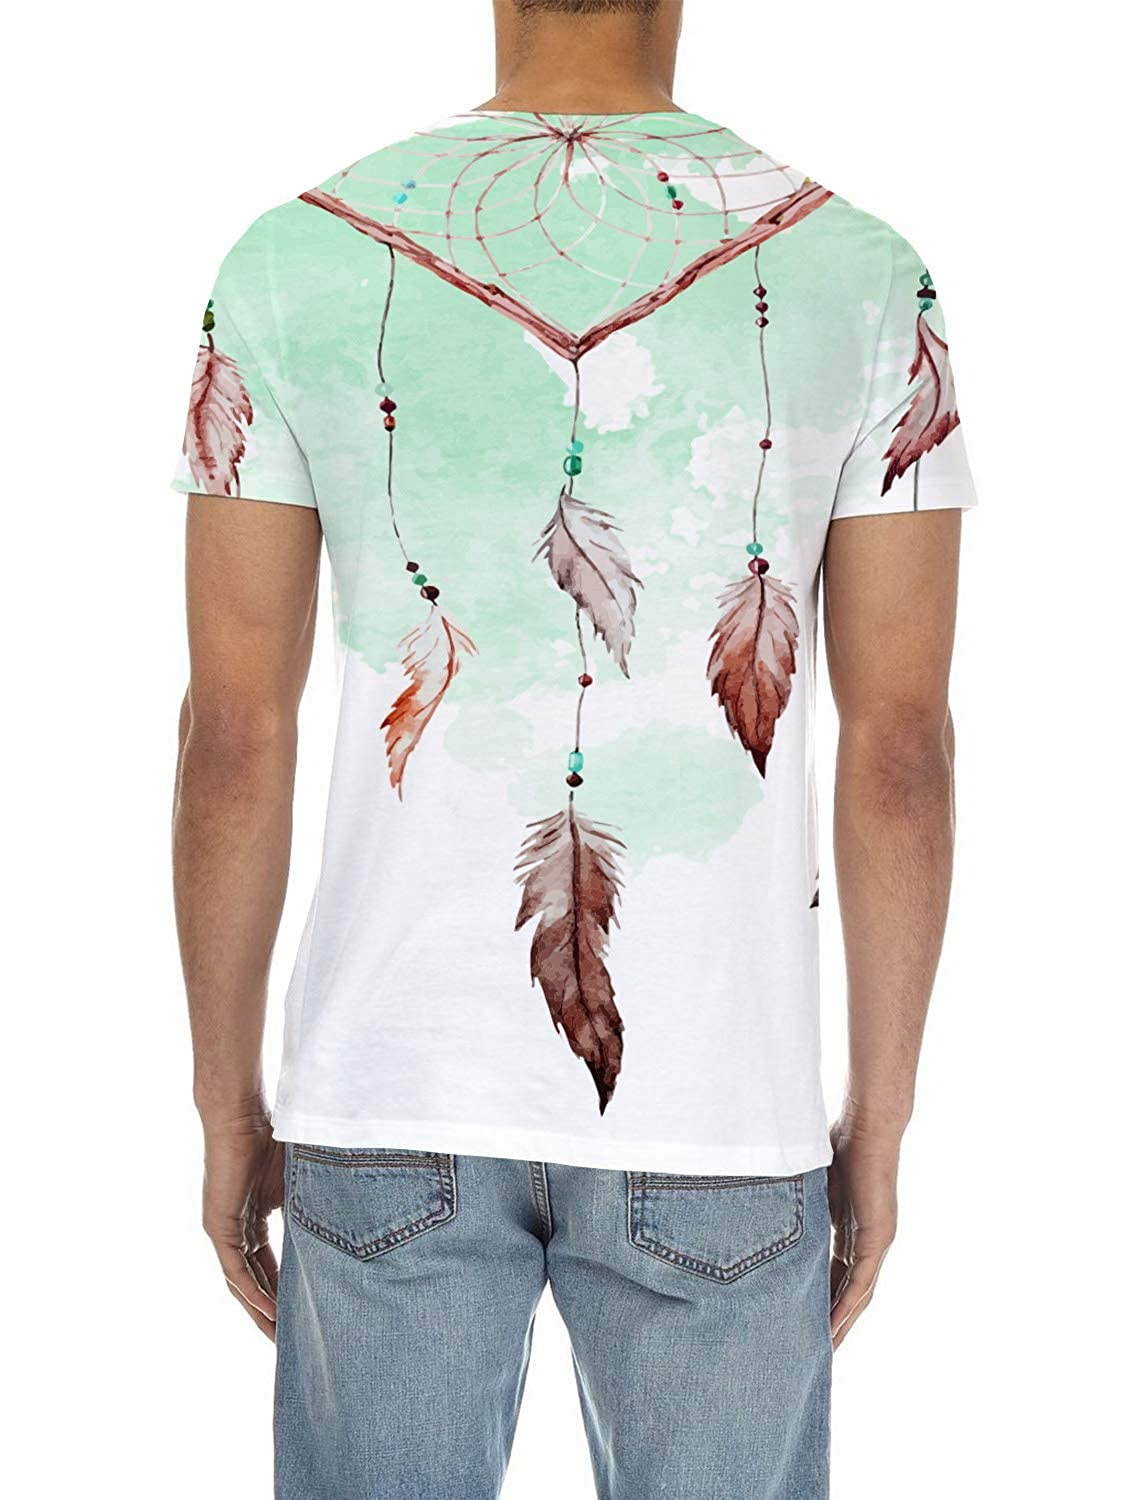 SunShine Day Feather Mens Everyday ComfortSoft Short Sleeve T-Shirt for Workout Running Sports